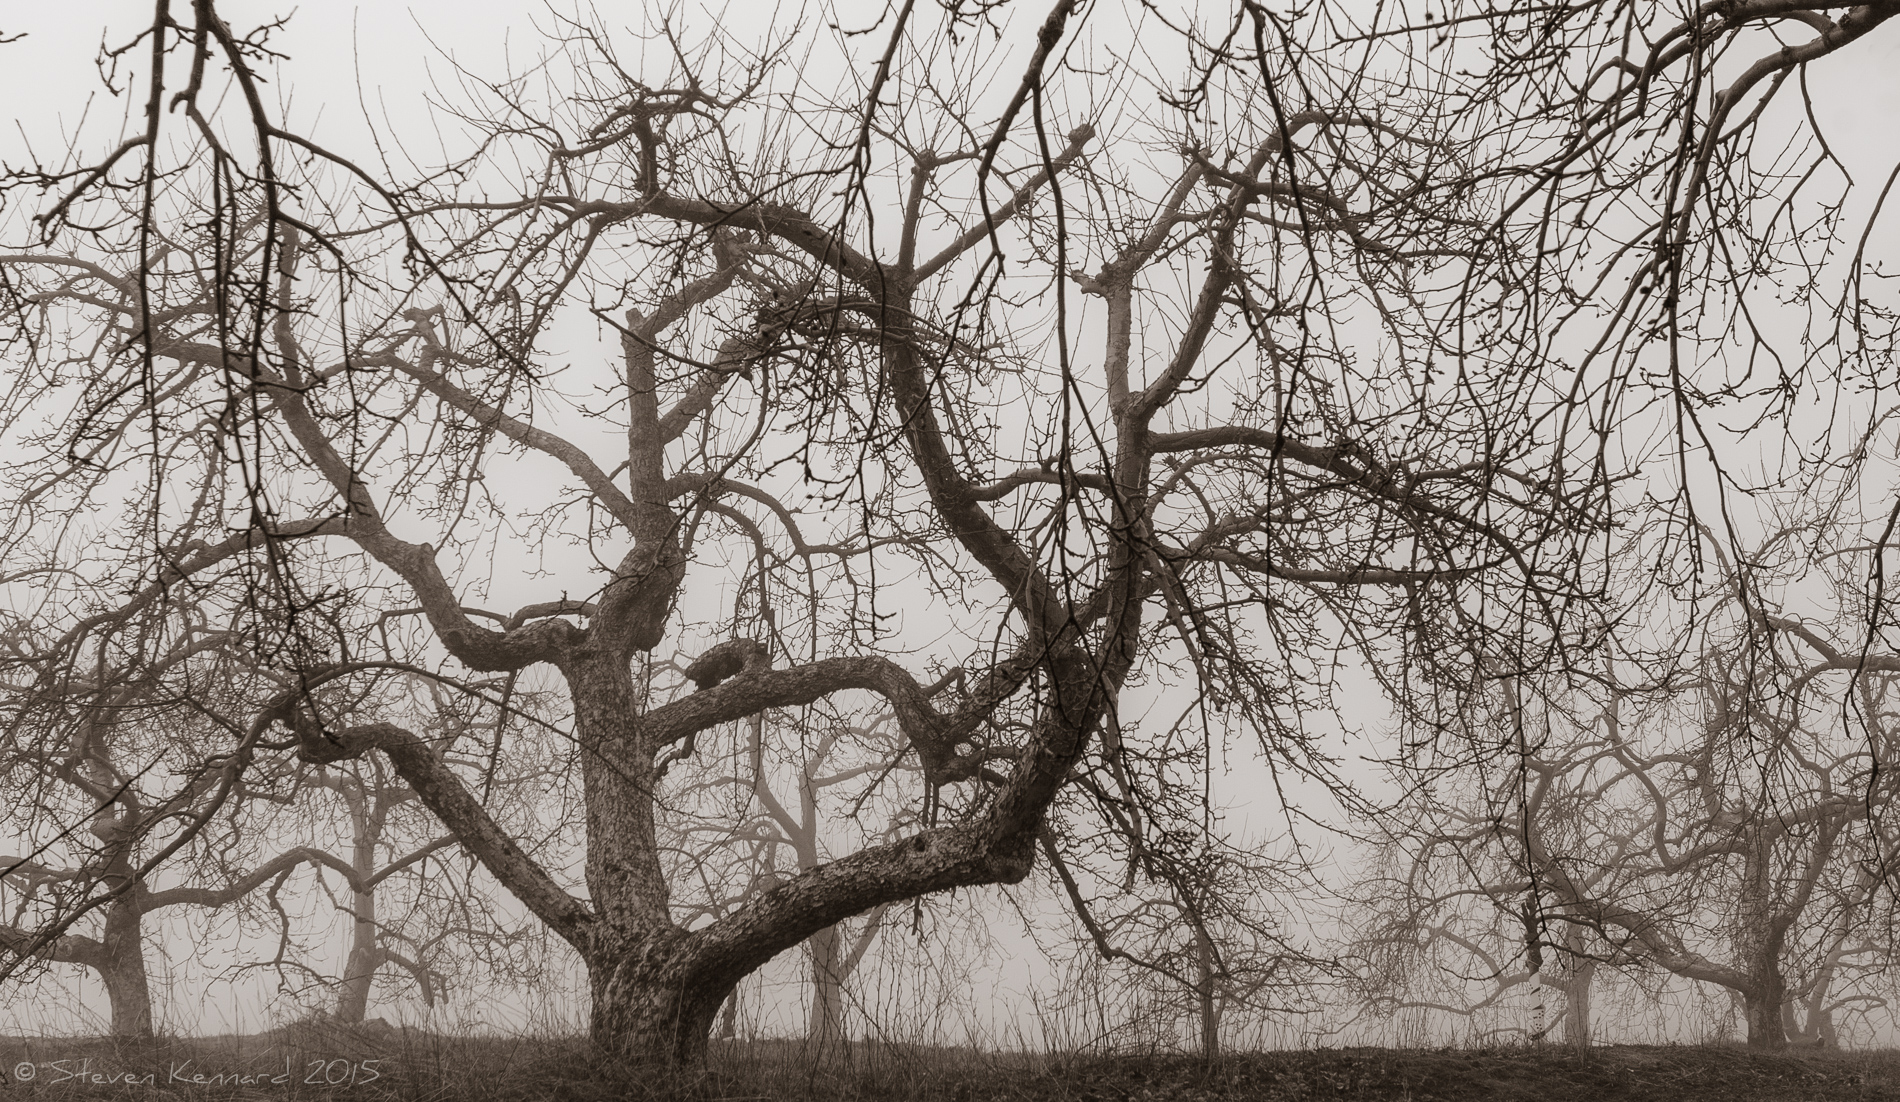 The Lost Orchard 2 Steven Kennard